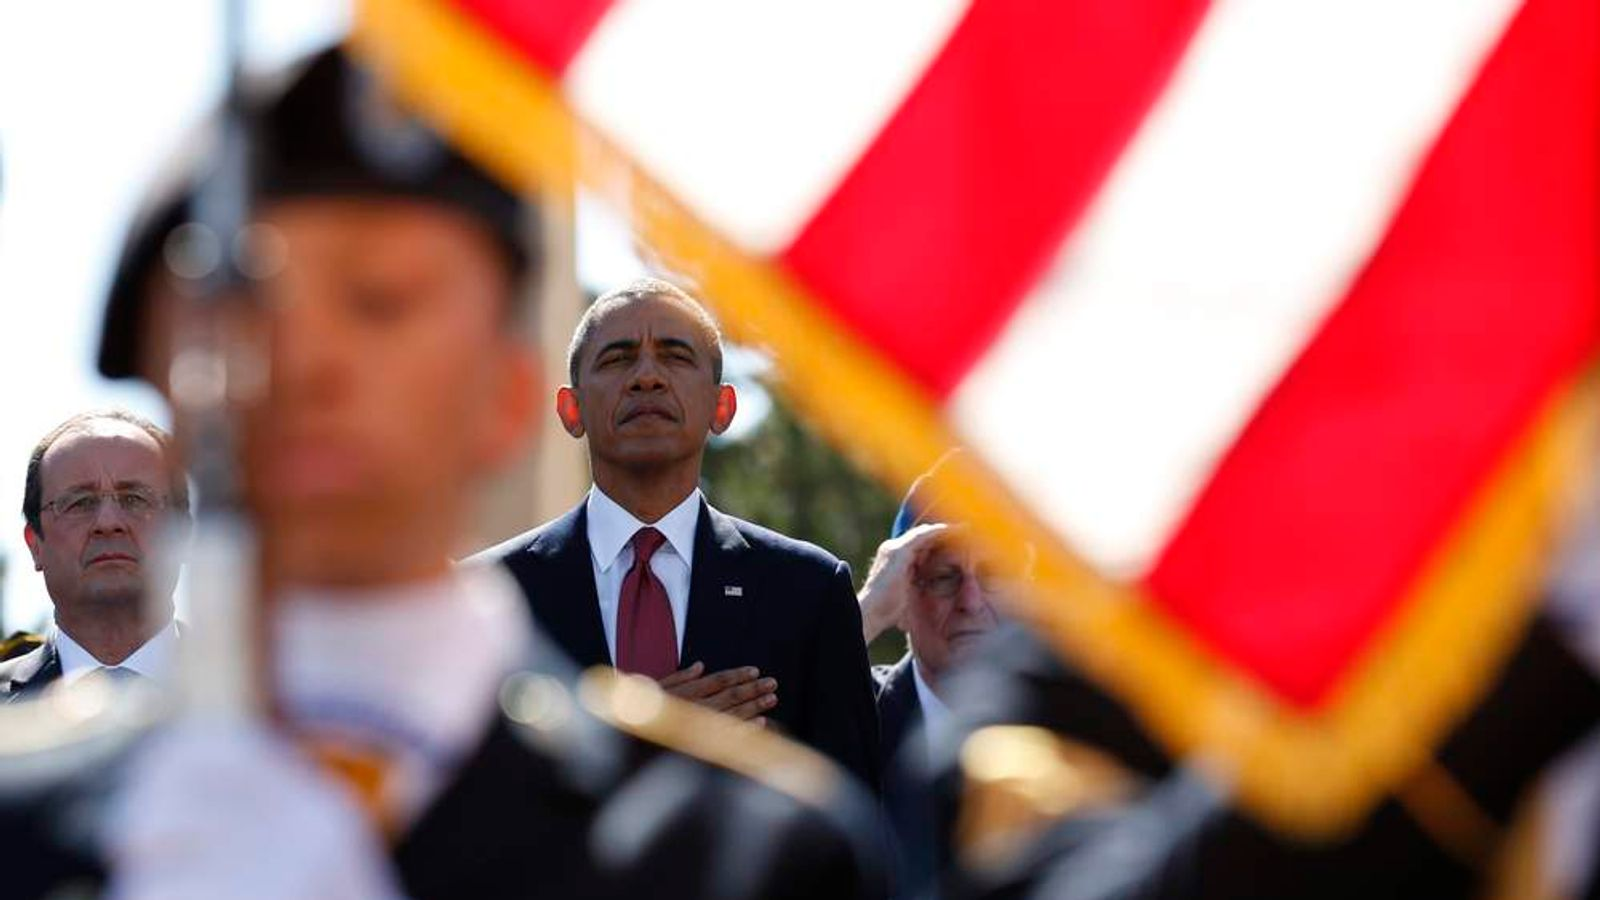 President Obama at D-Day commemorations in Colleville-sur-Mer